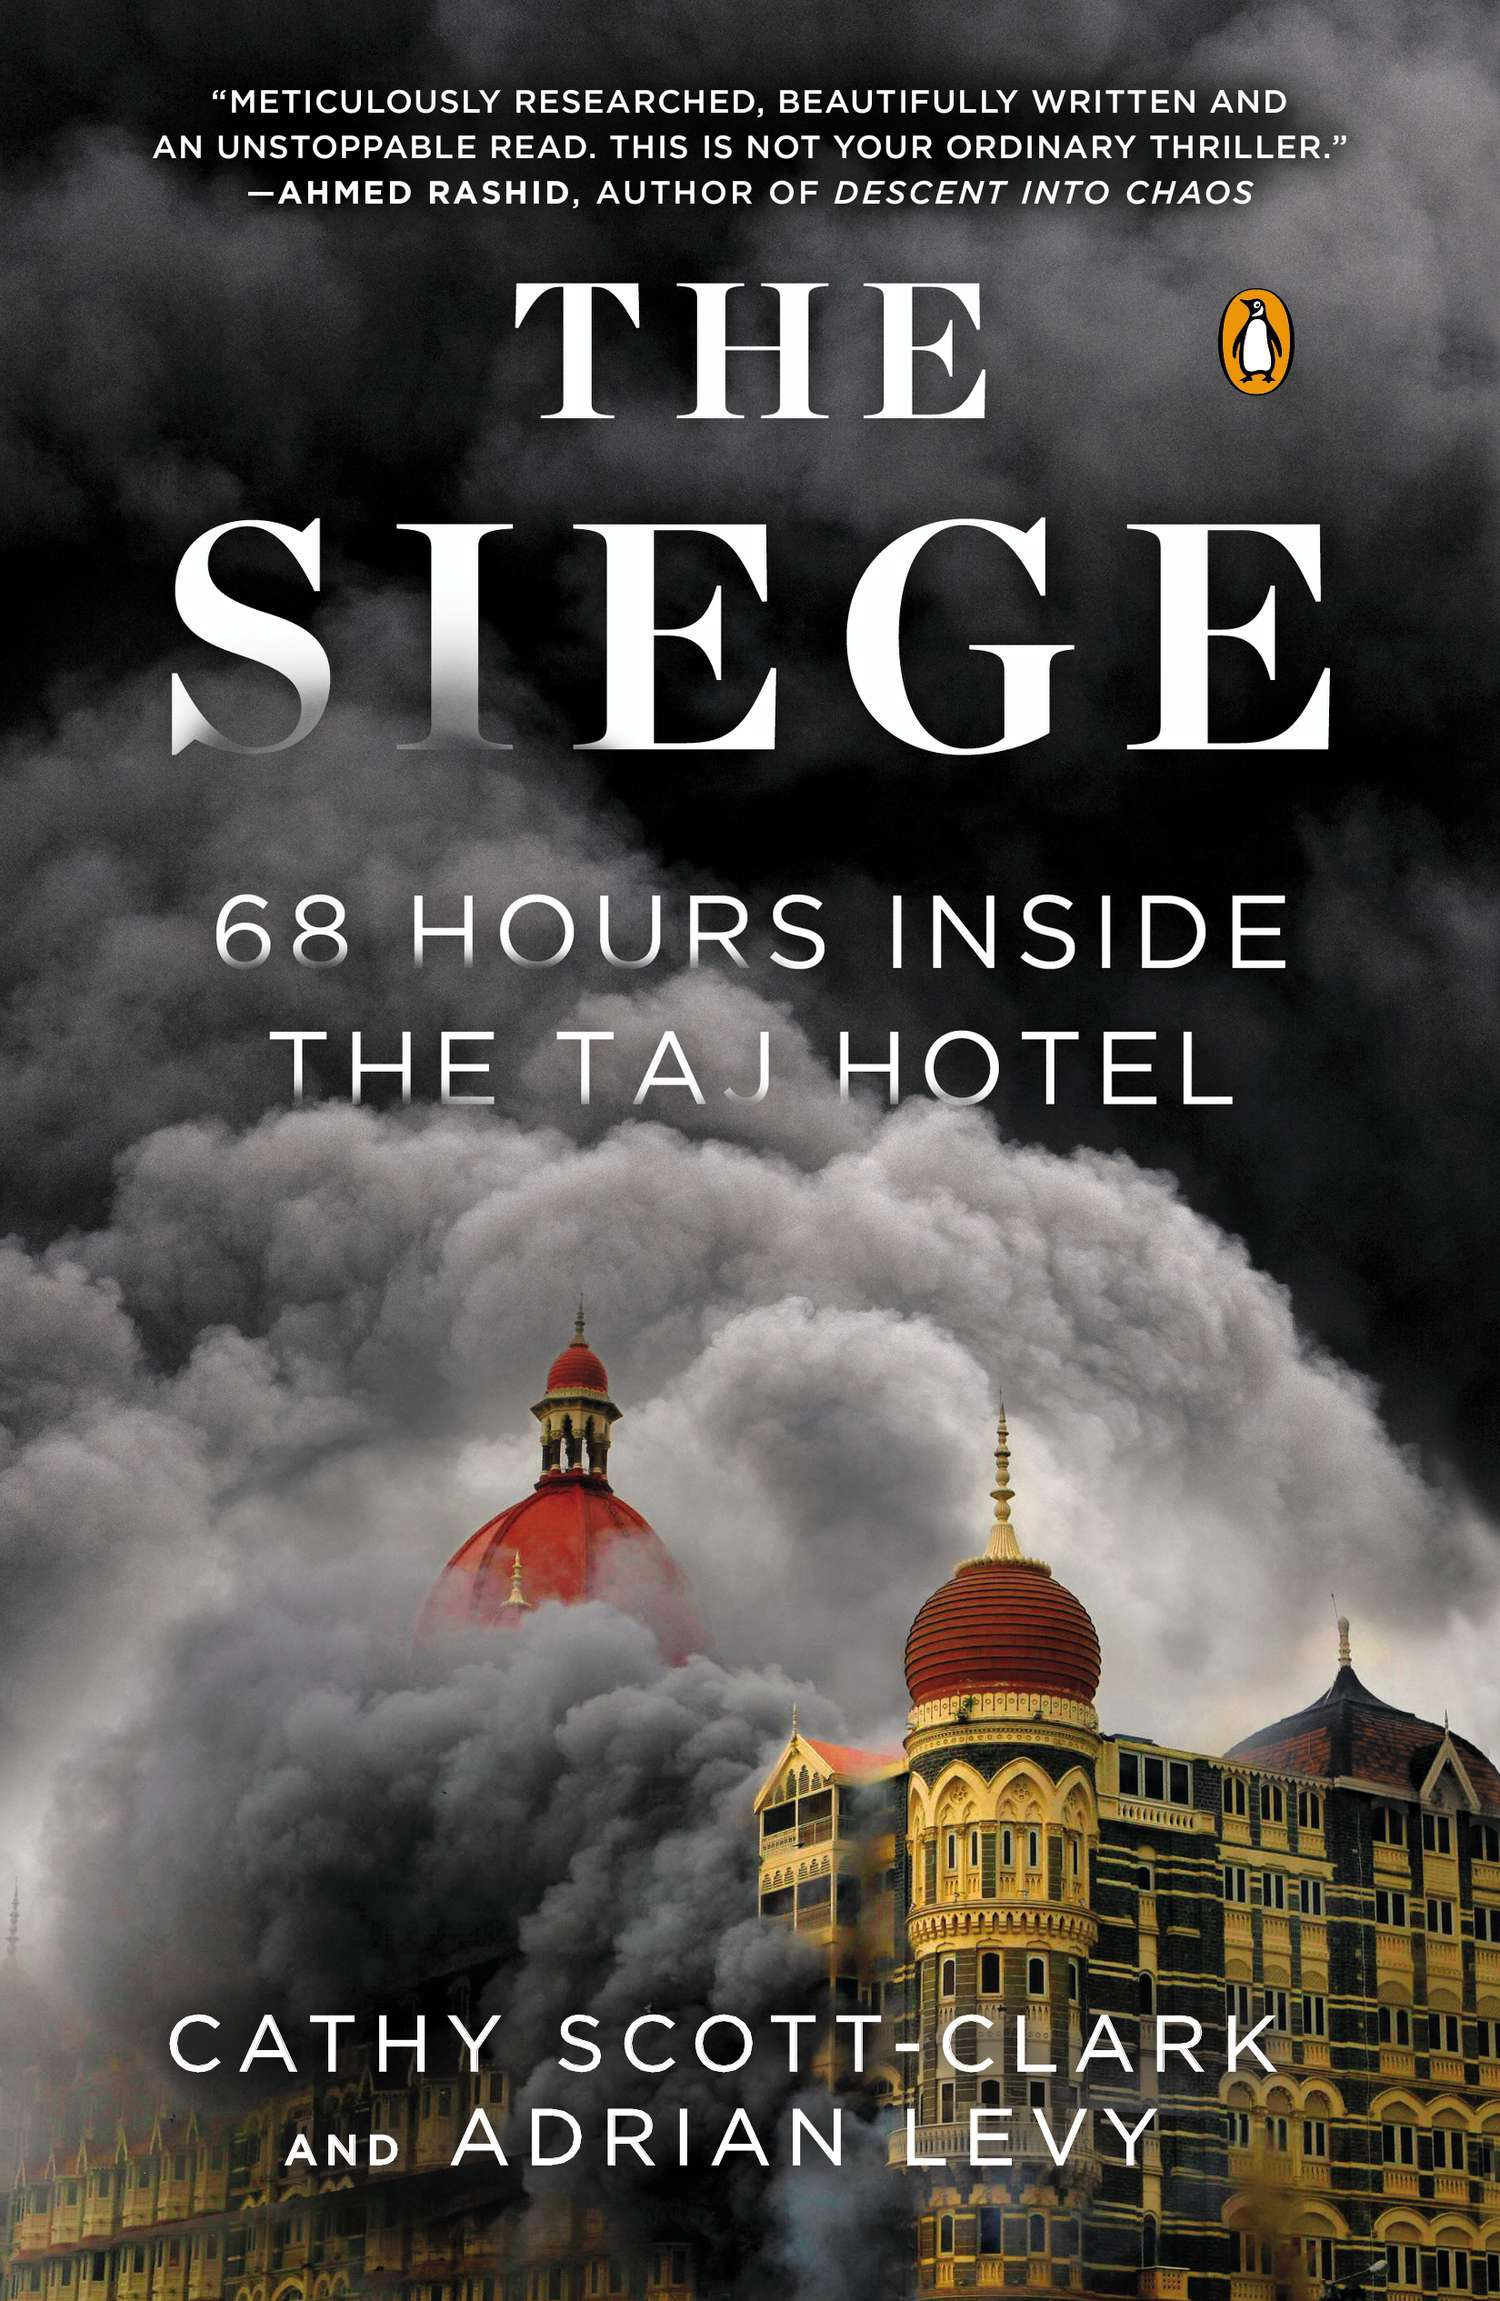 siege cover pbk final.jpg